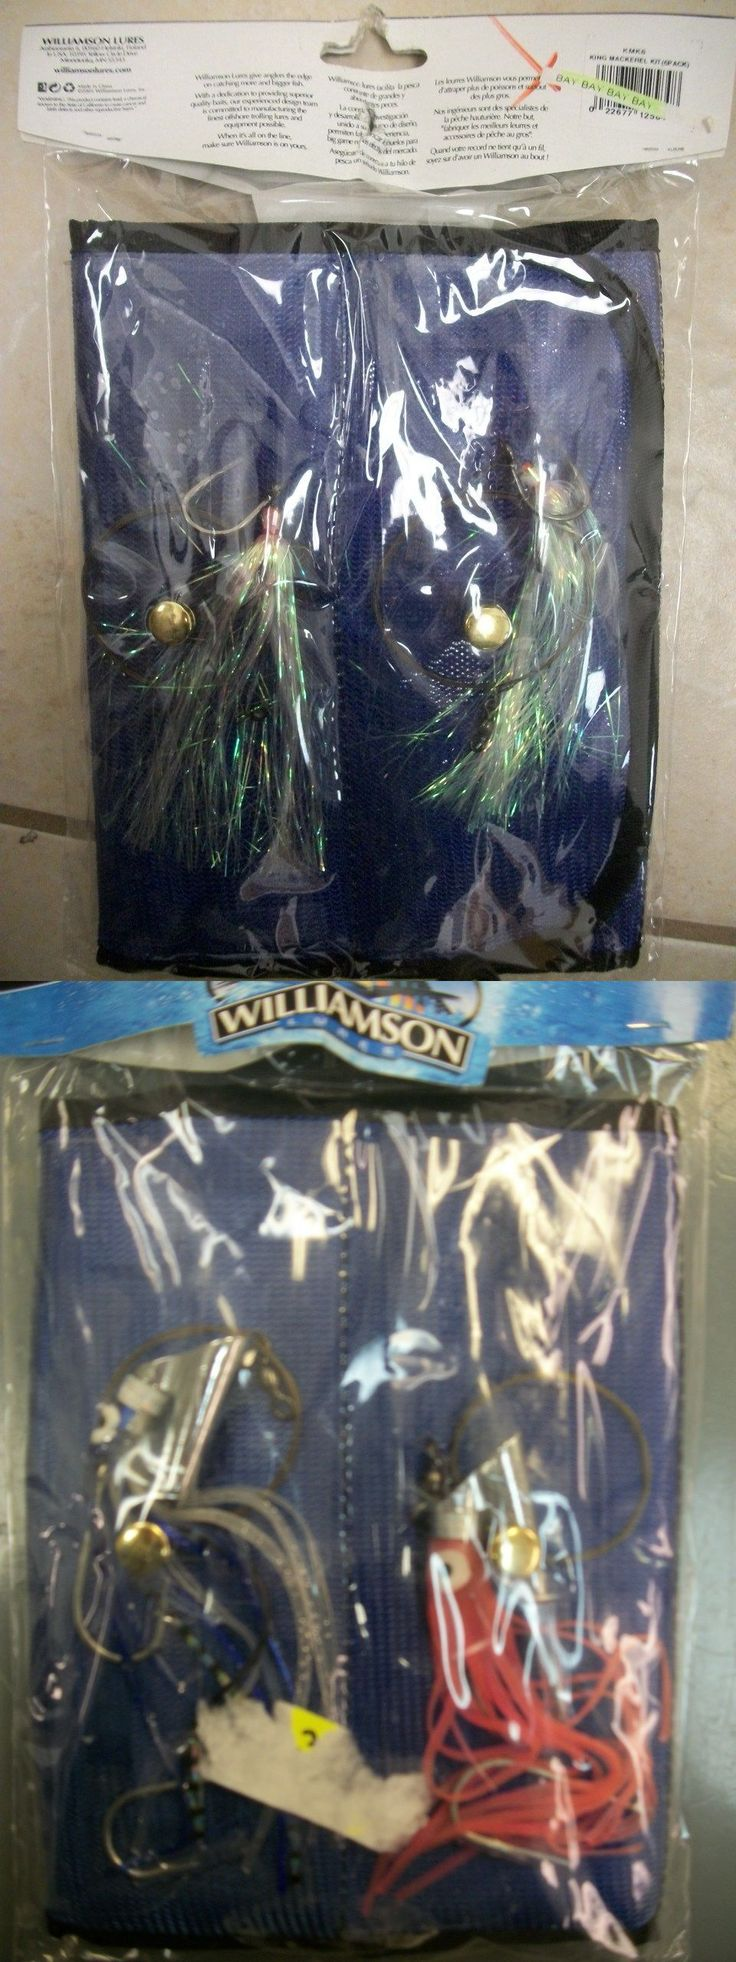 Rigs and Harnesses 179975: Williamson Lures King Mackerel Kit (6Pack) Kmk6 -> BUY IT NOW ONLY: $35 on eBay!